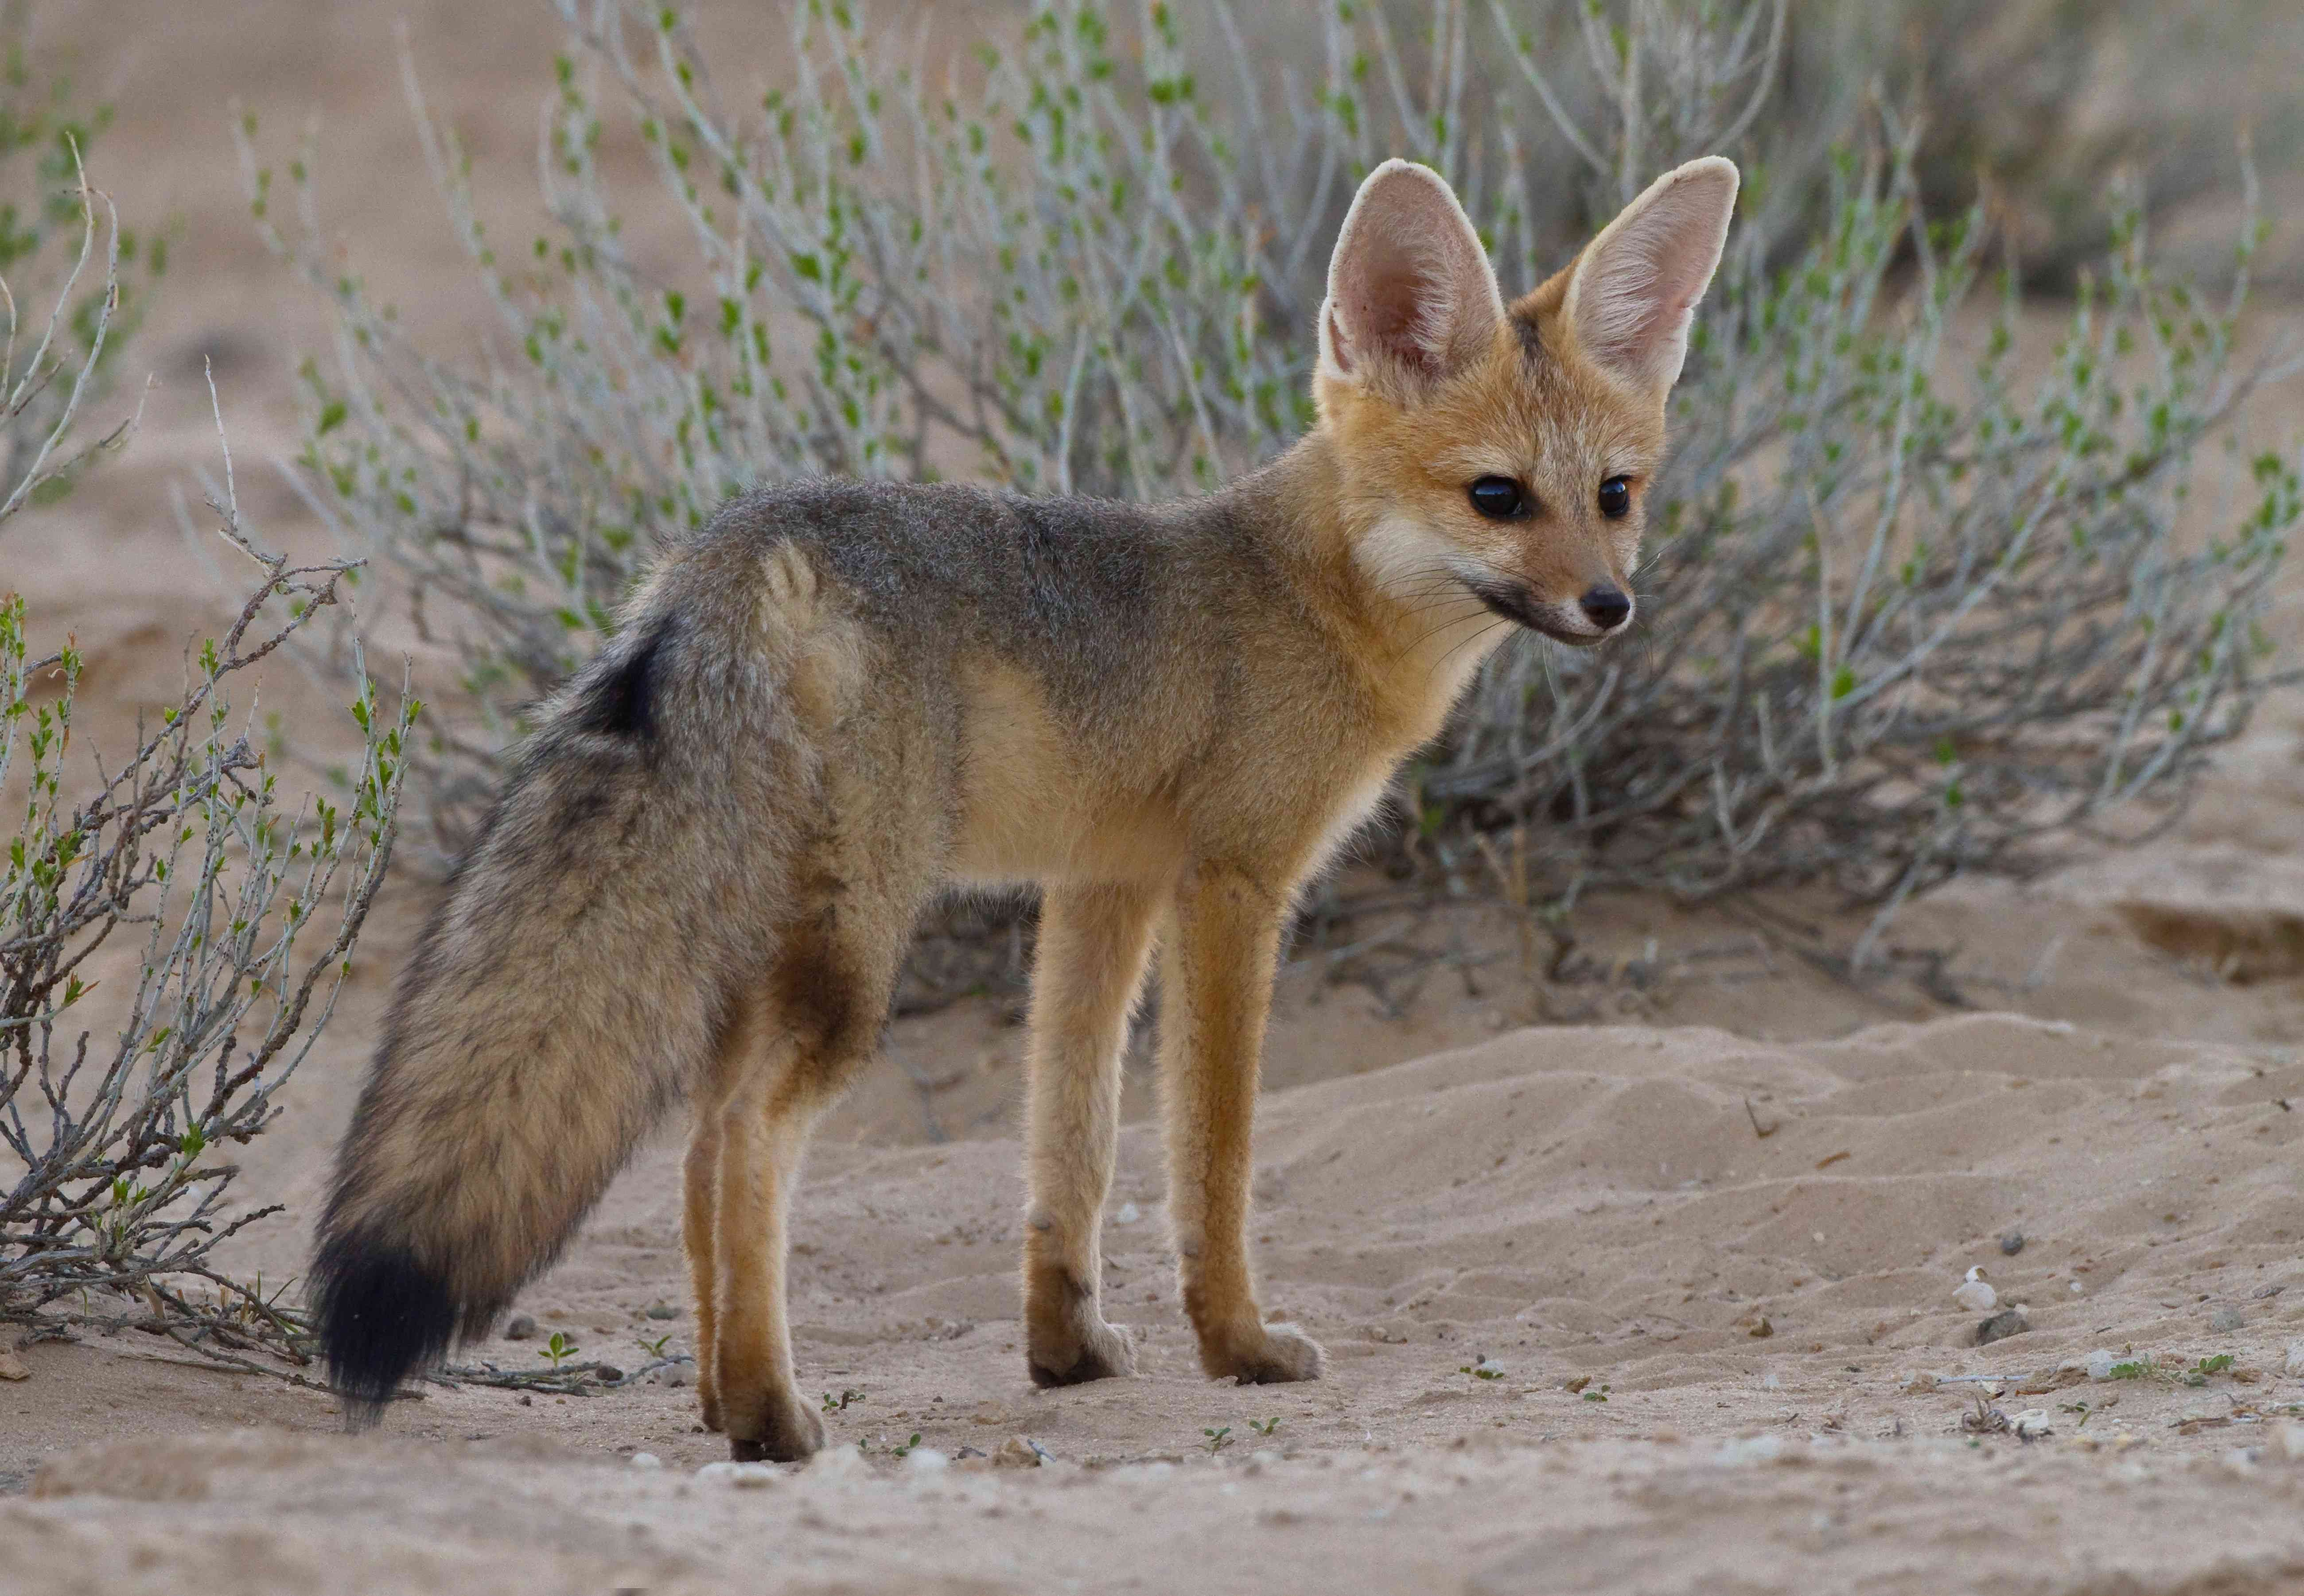 Cape fox in the sand in Kgalagadi Transfrontier Park, Africa